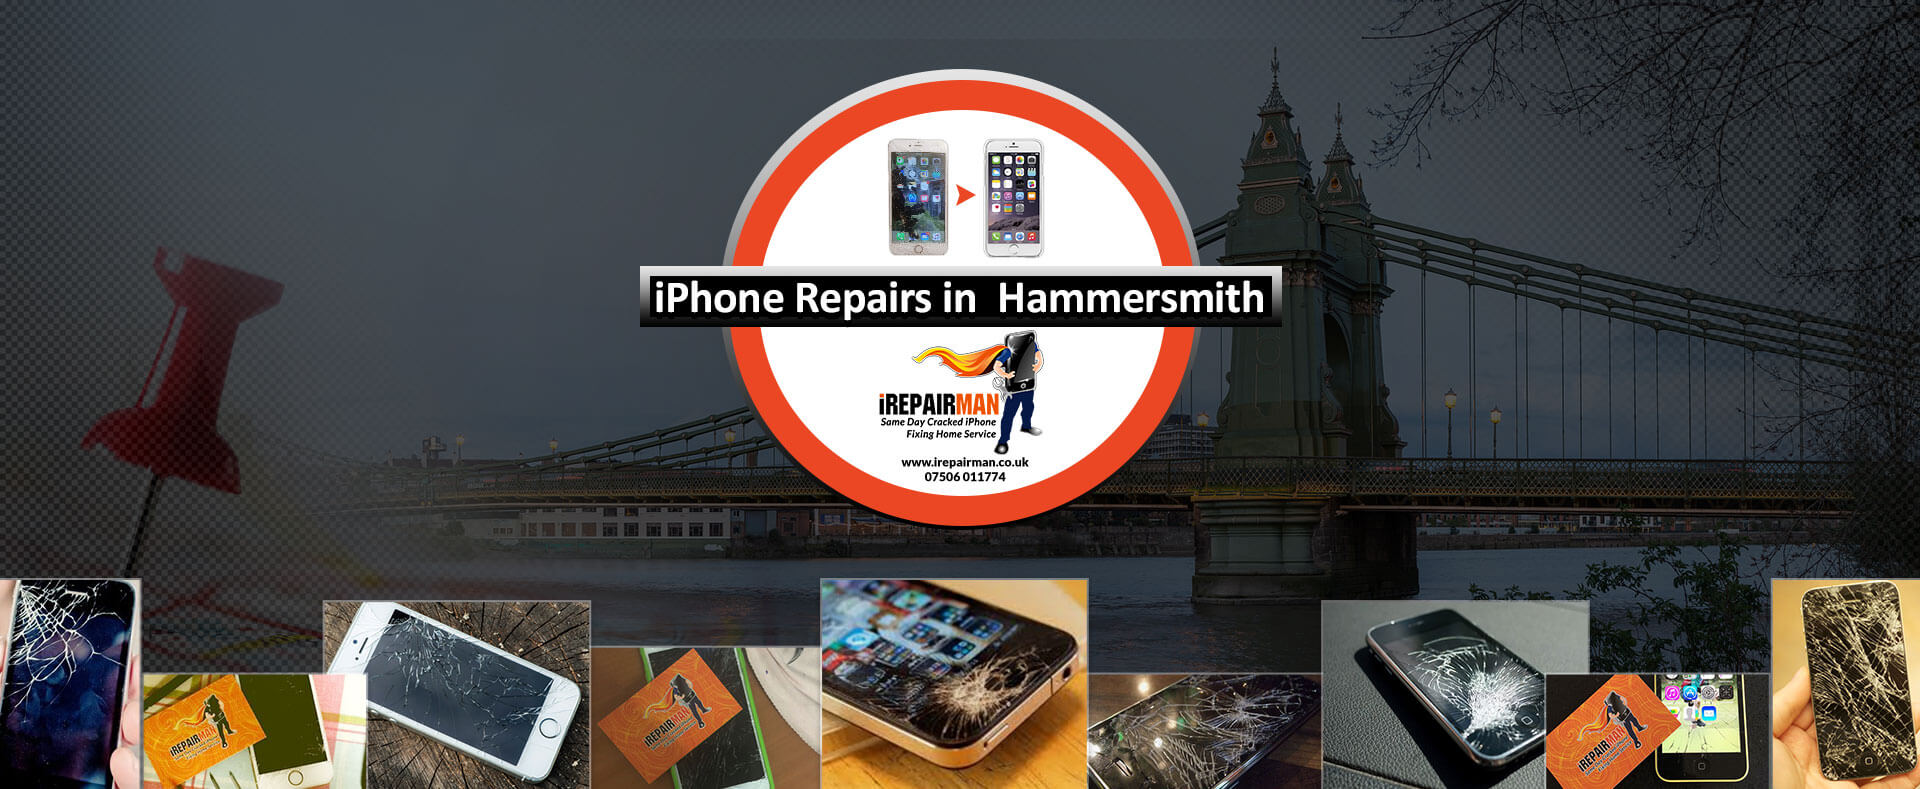 iPhone Repairs in Hammersmith